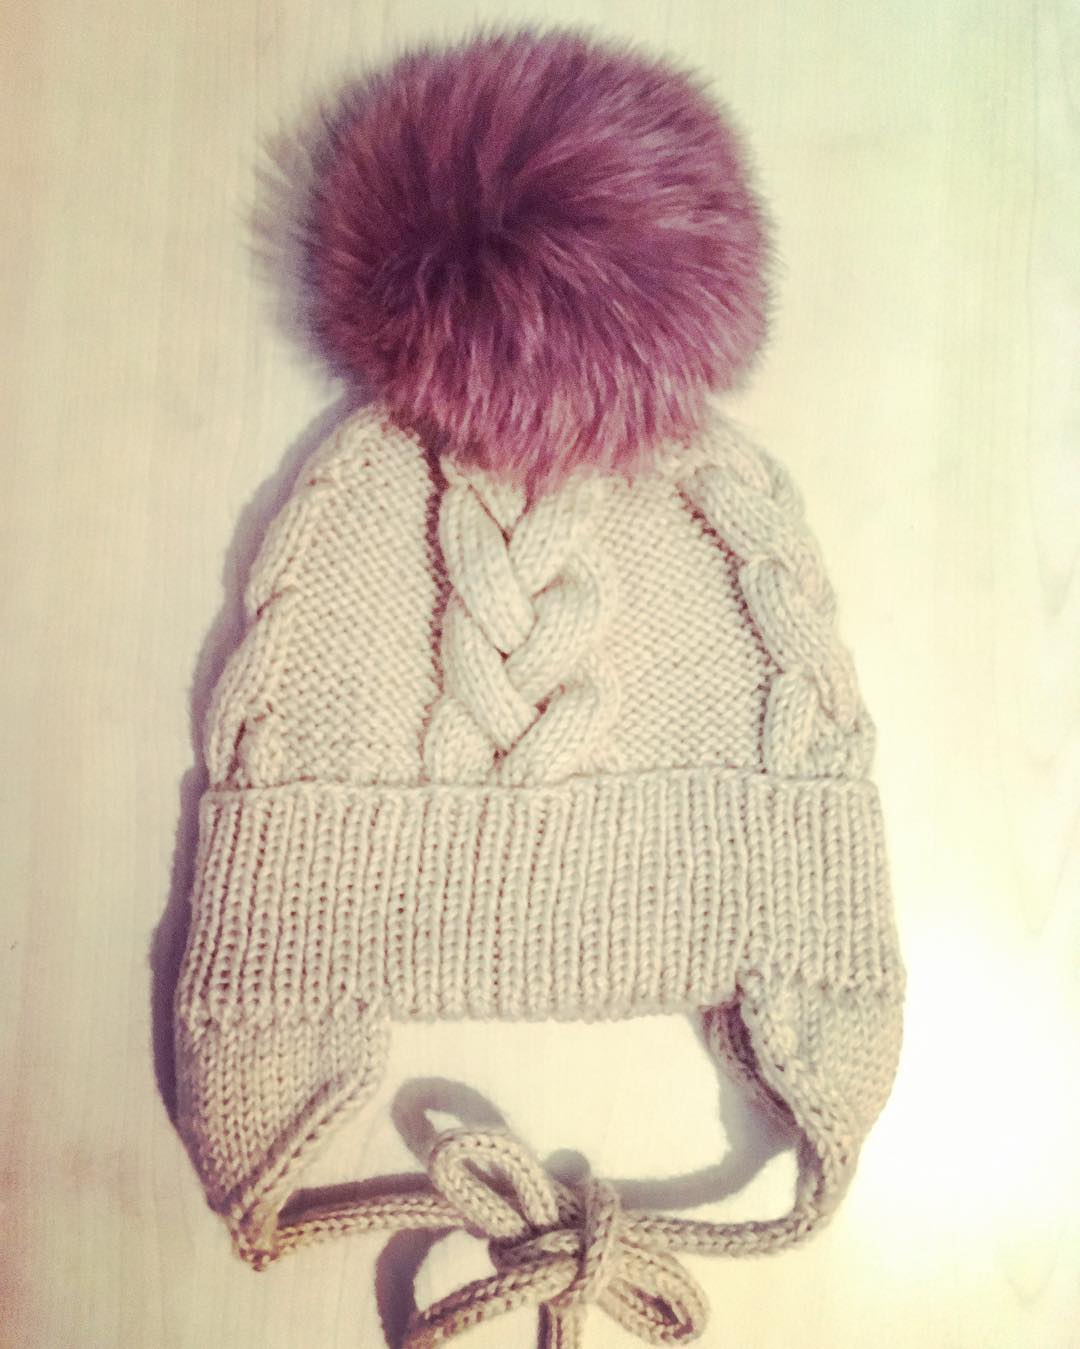 e43abe885 65 Only the Best Knit Hat Patterns Images for 2019 - Page 12 of 54 ...